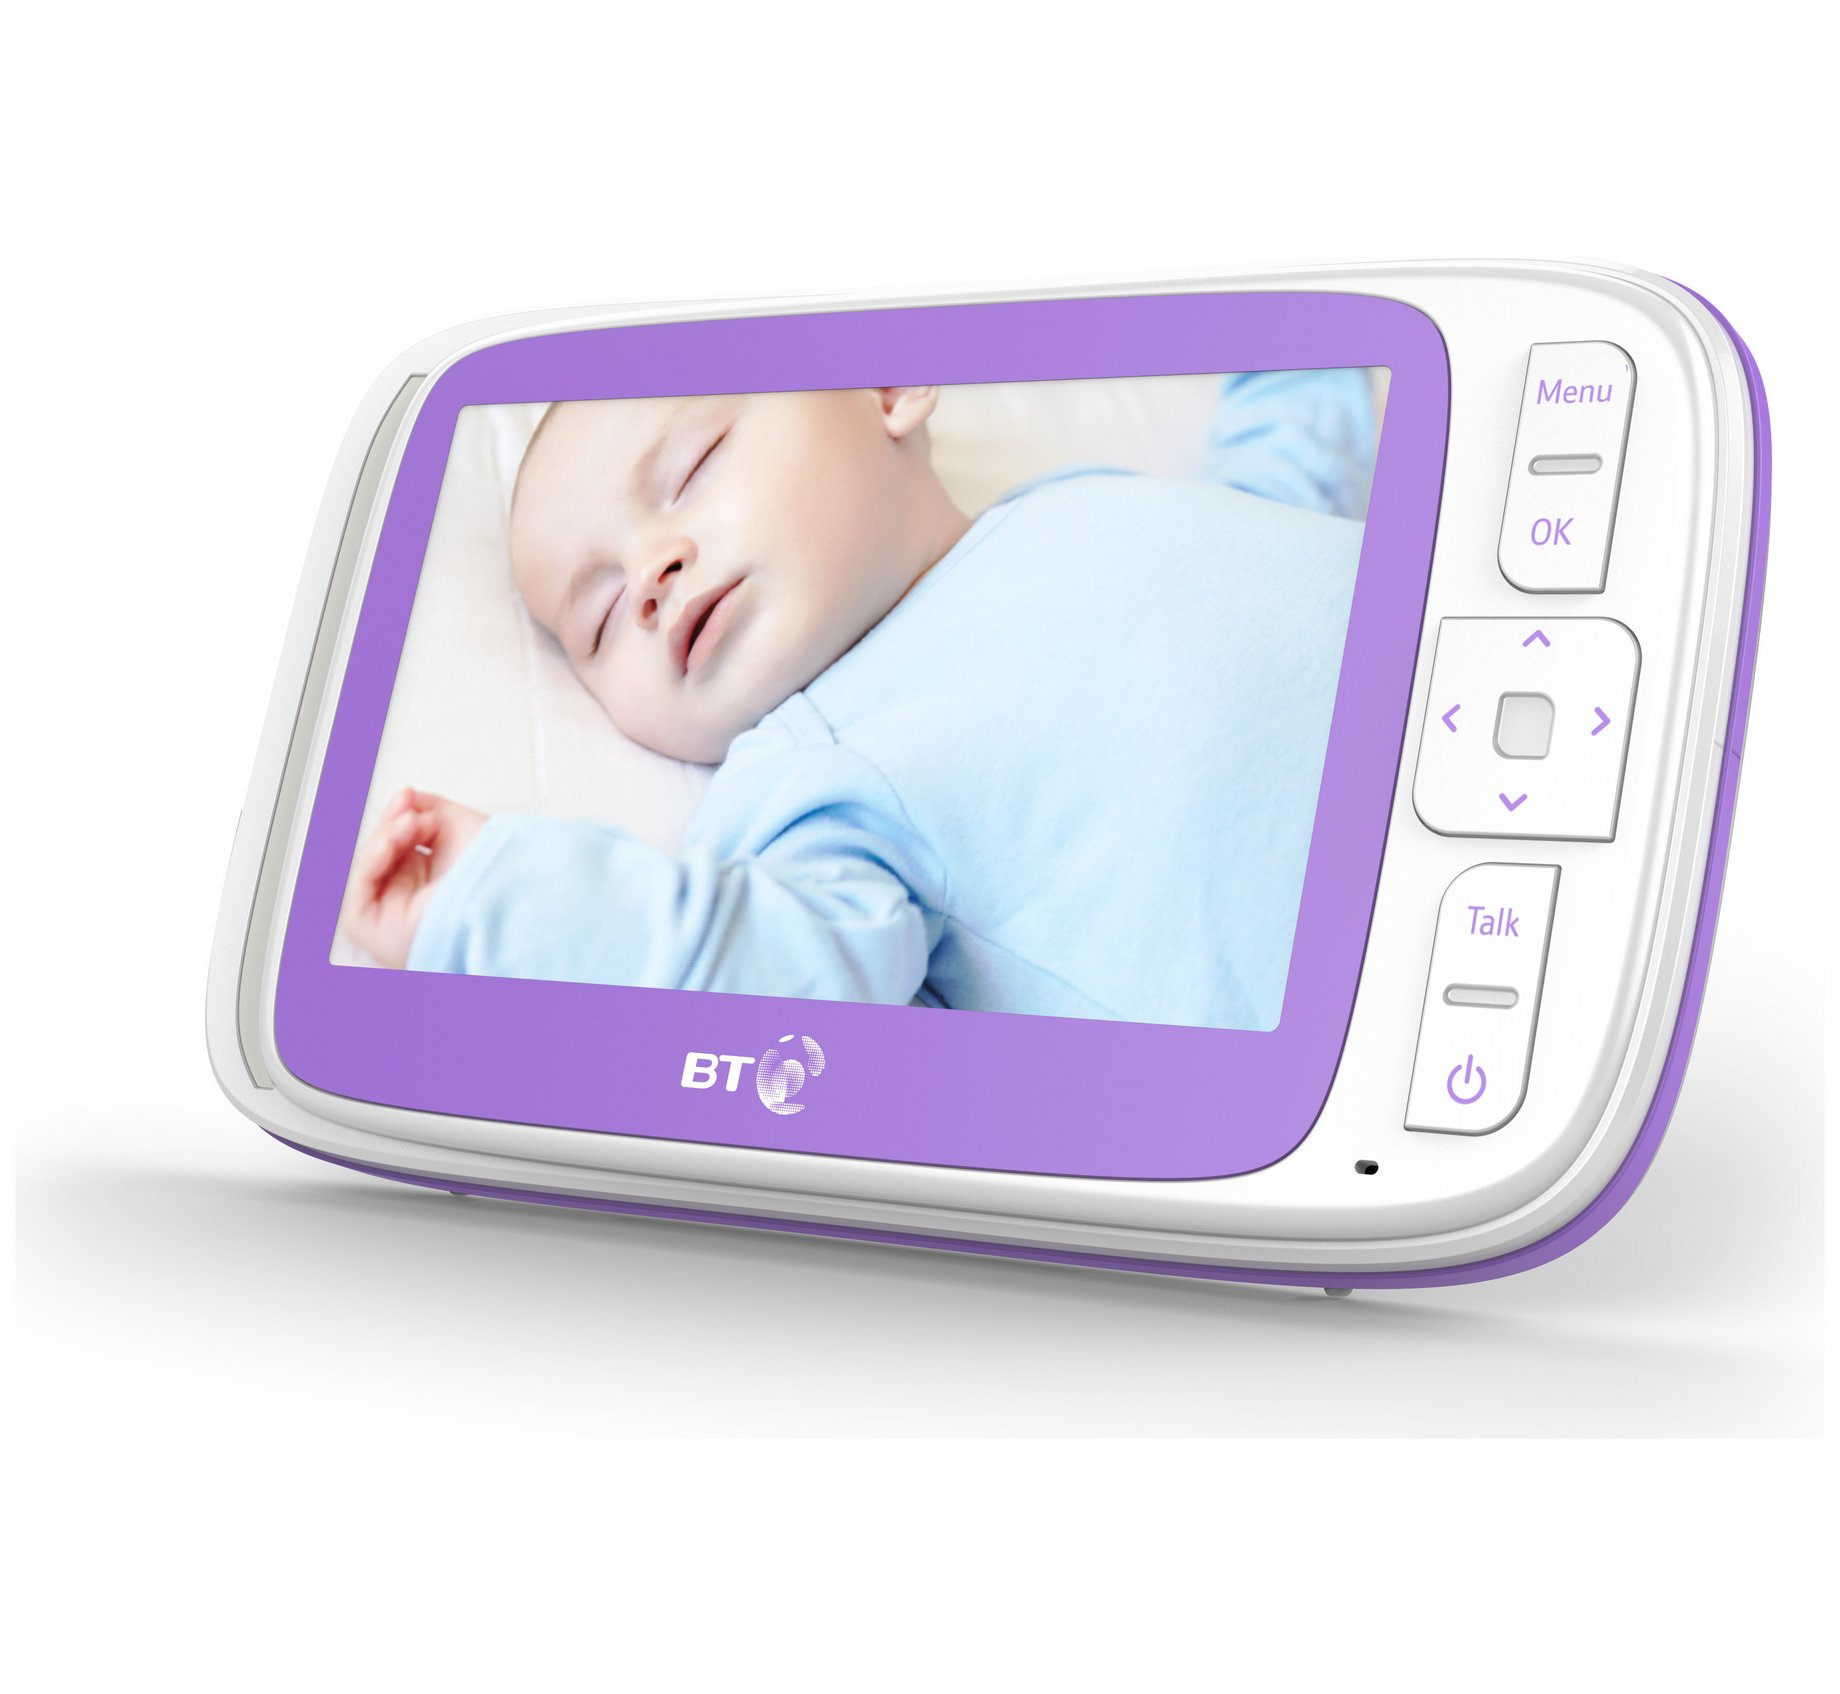 bt video baby monitor 6000 with 5 colour screen 5 lullabies and remote control ebay. Black Bedroom Furniture Sets. Home Design Ideas